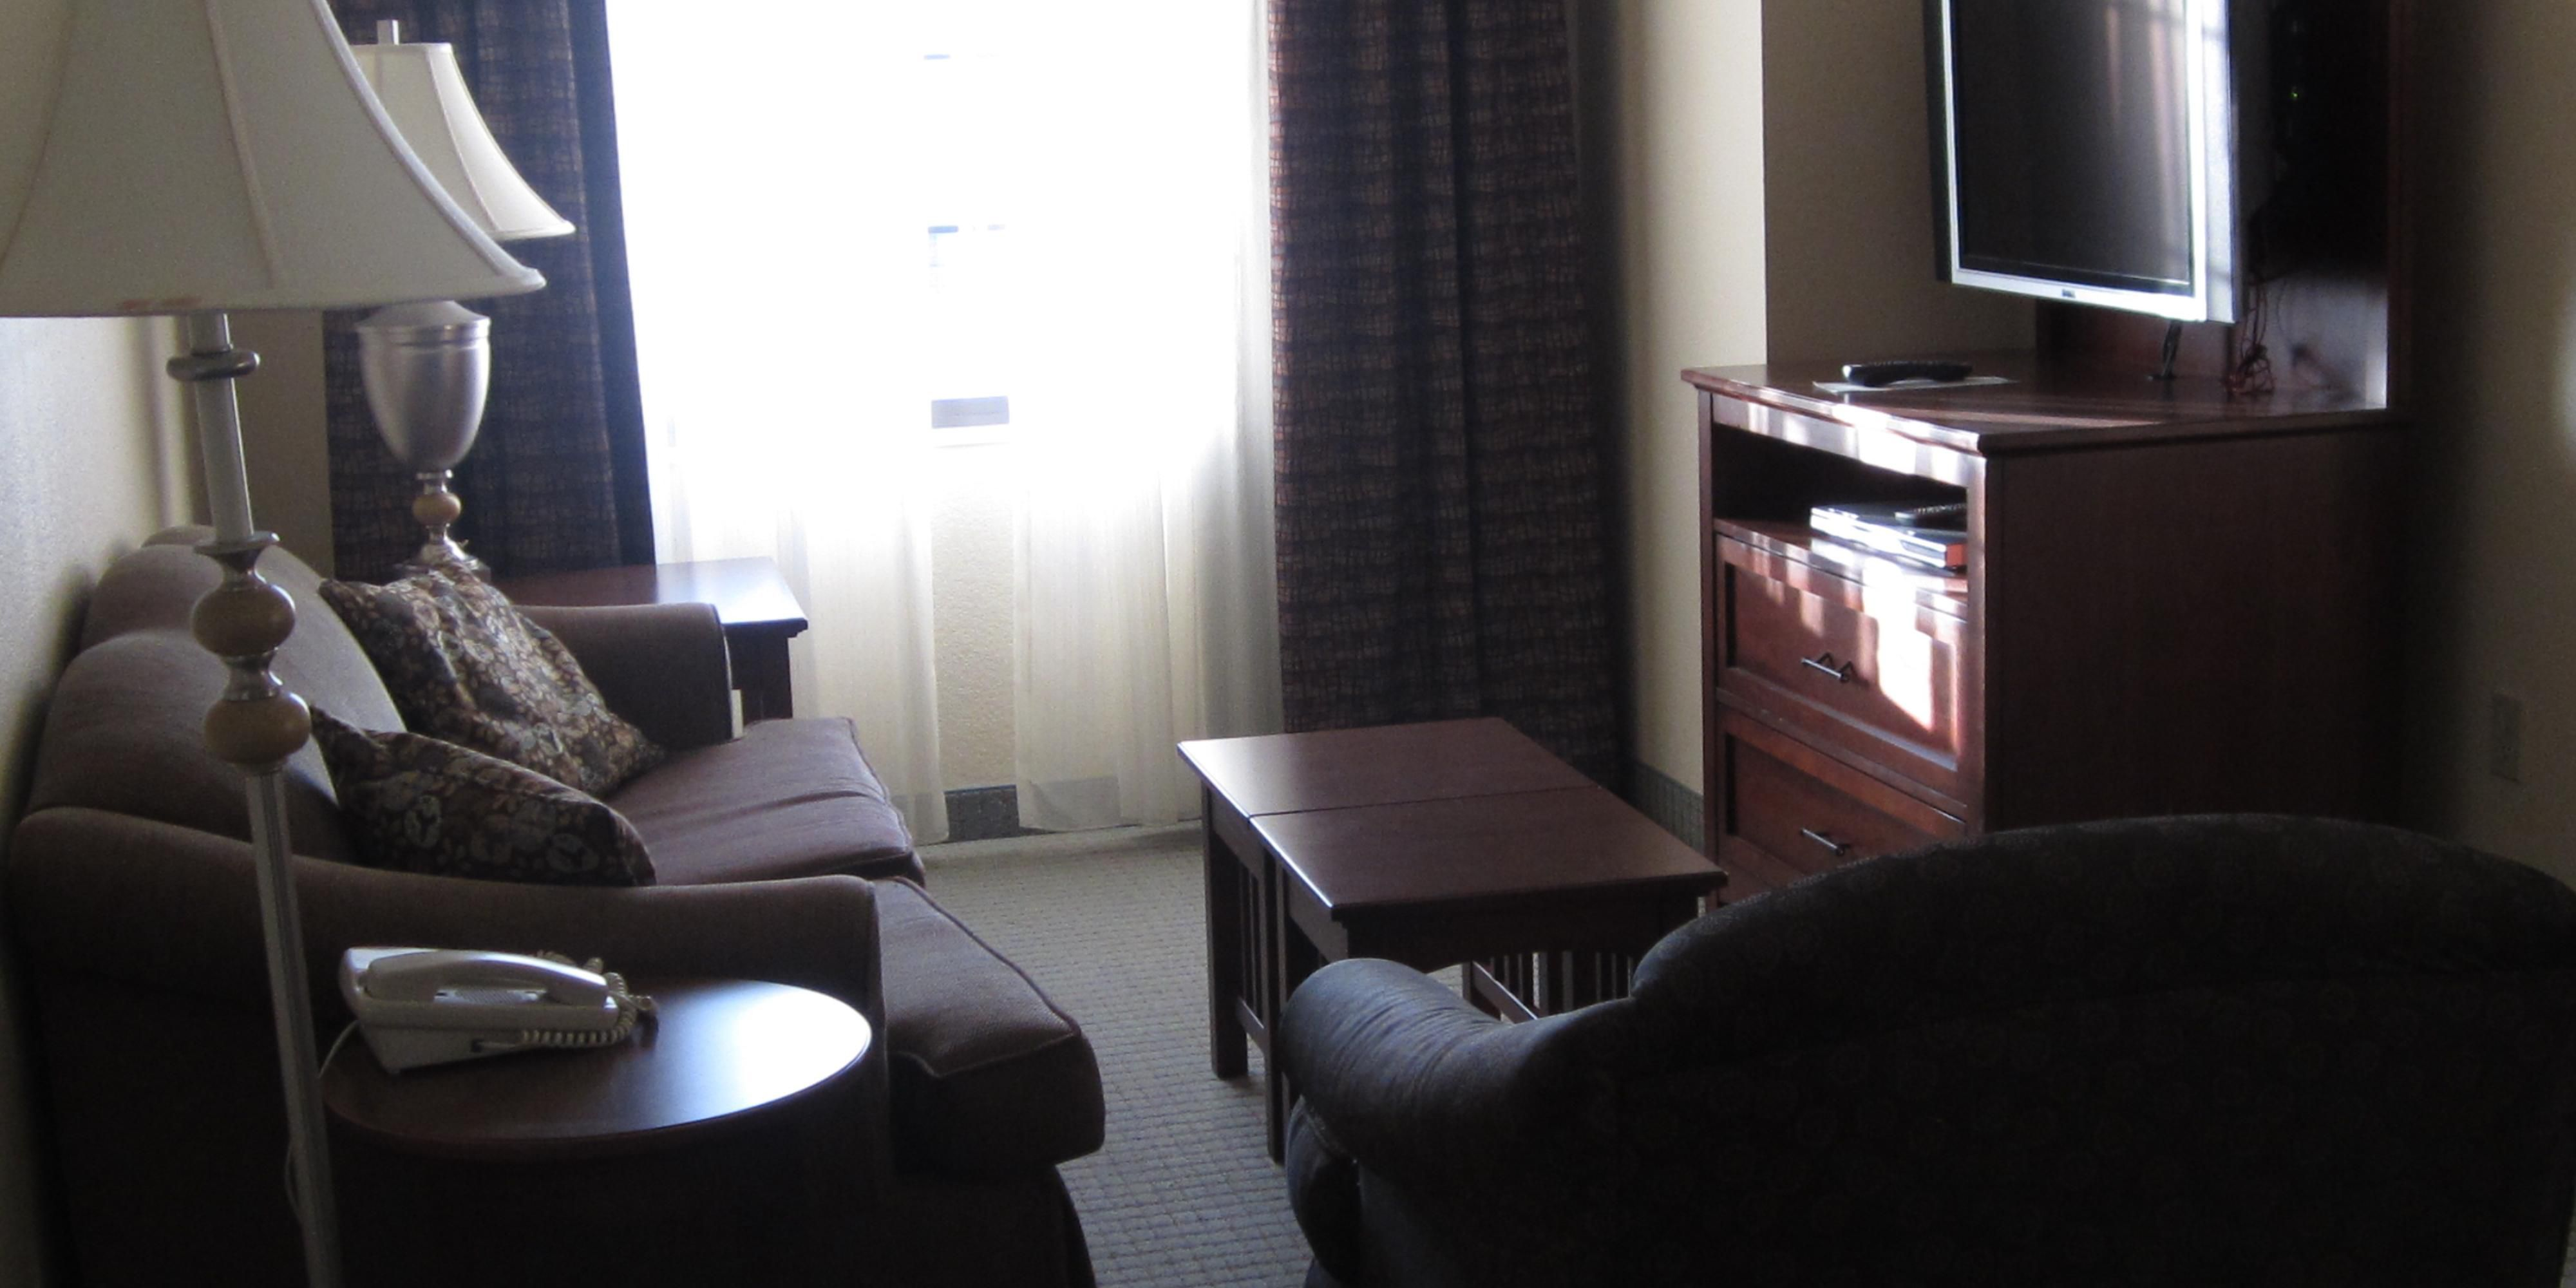 Staybridge Suites Kalamazoo   Extended Stay Hotel In Kalamazoo, United  States With Full Kitchen